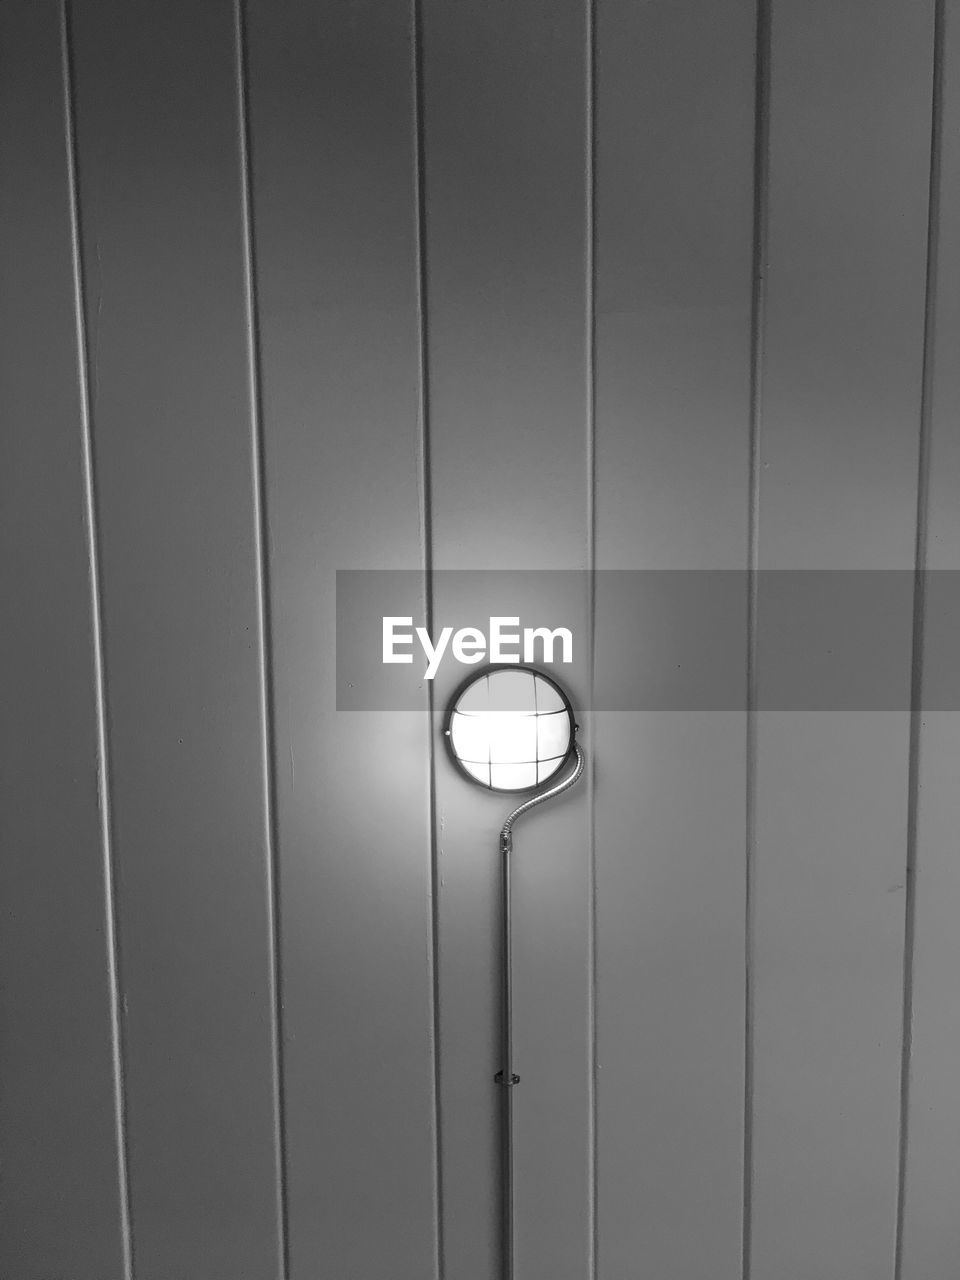 indoors, lighting equipment, no people, electricity, ceiling, illuminated, technology, close-up, day